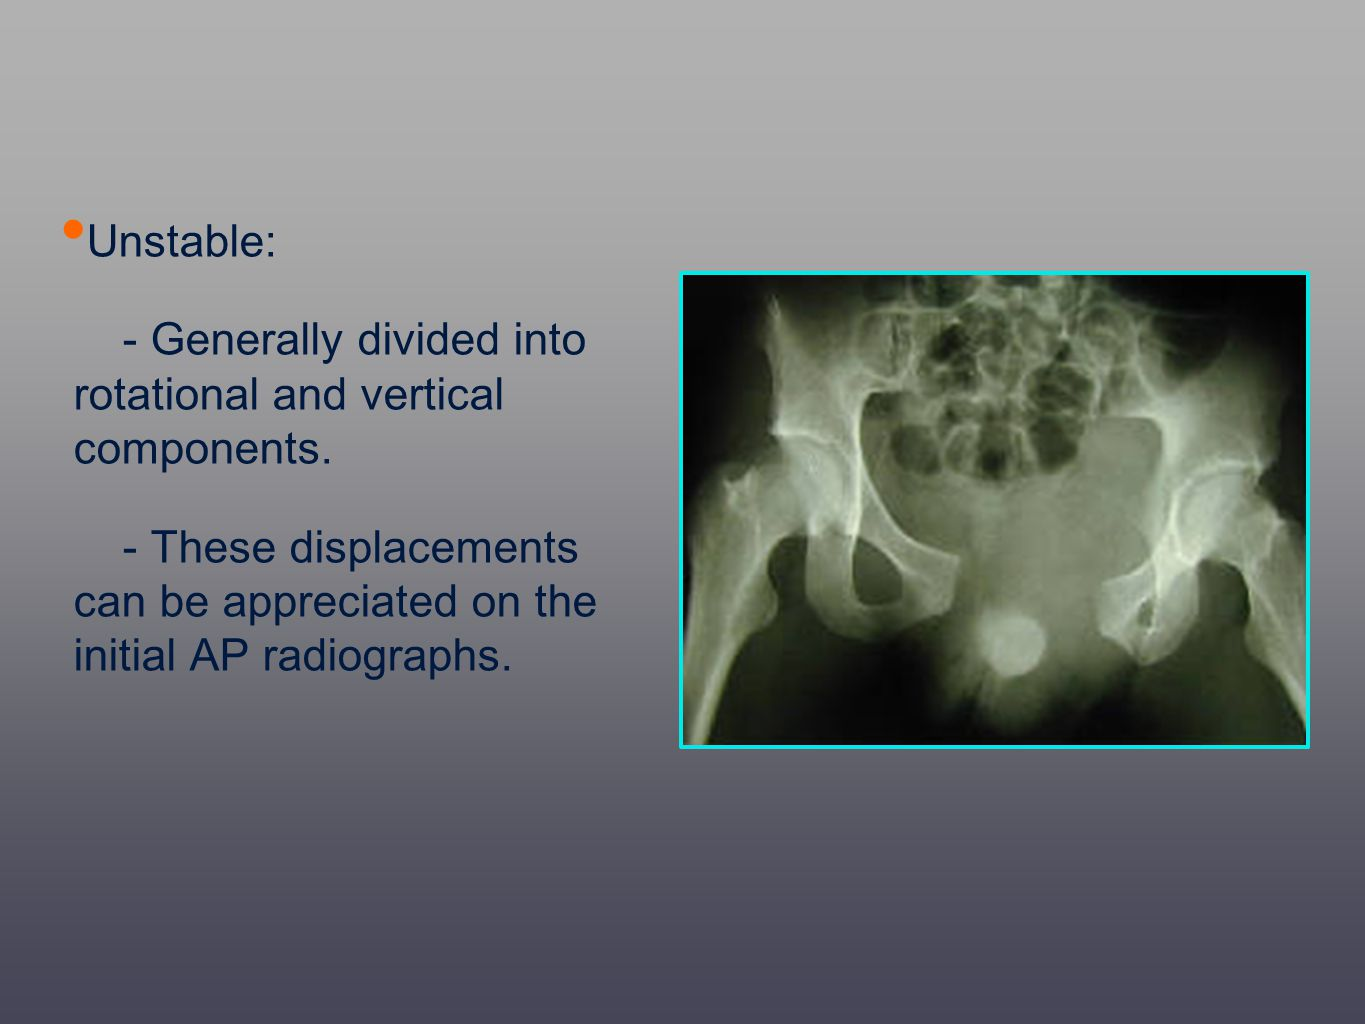 Unstable: - Generally divided into rotational and vertical components. - These displacements can be appreciated on the initial AP radiographs.